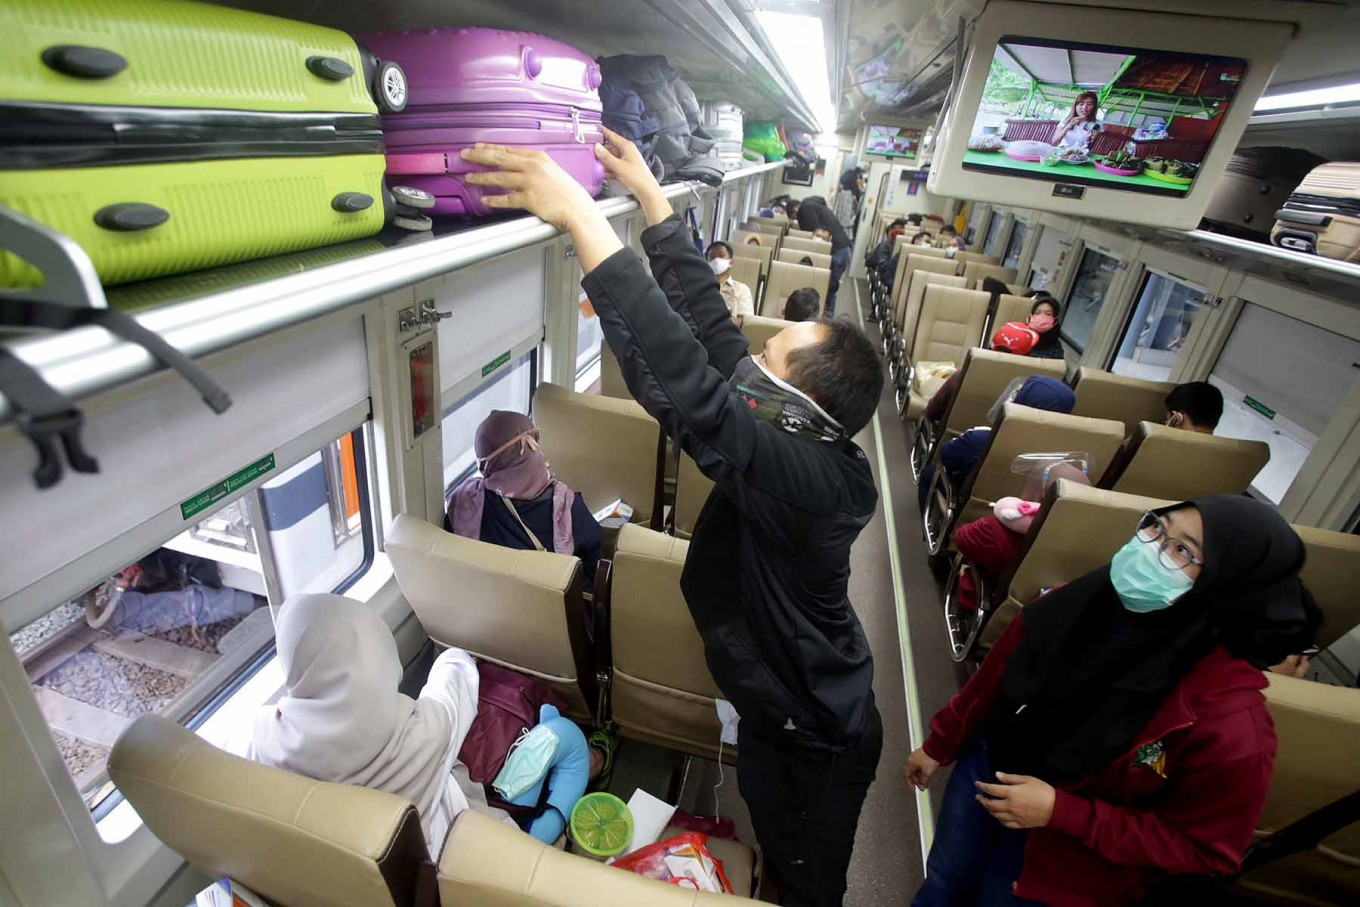 A passenger arranges his luggage on the Kertajaya train, serving the Jakarta–Surabaya route, at Senen Station in Jakarta on Oct. 27. Many people chose to travel during their extended holiday despite the risk of contracting the coronavirus. JP/Wendra Ajistyatama